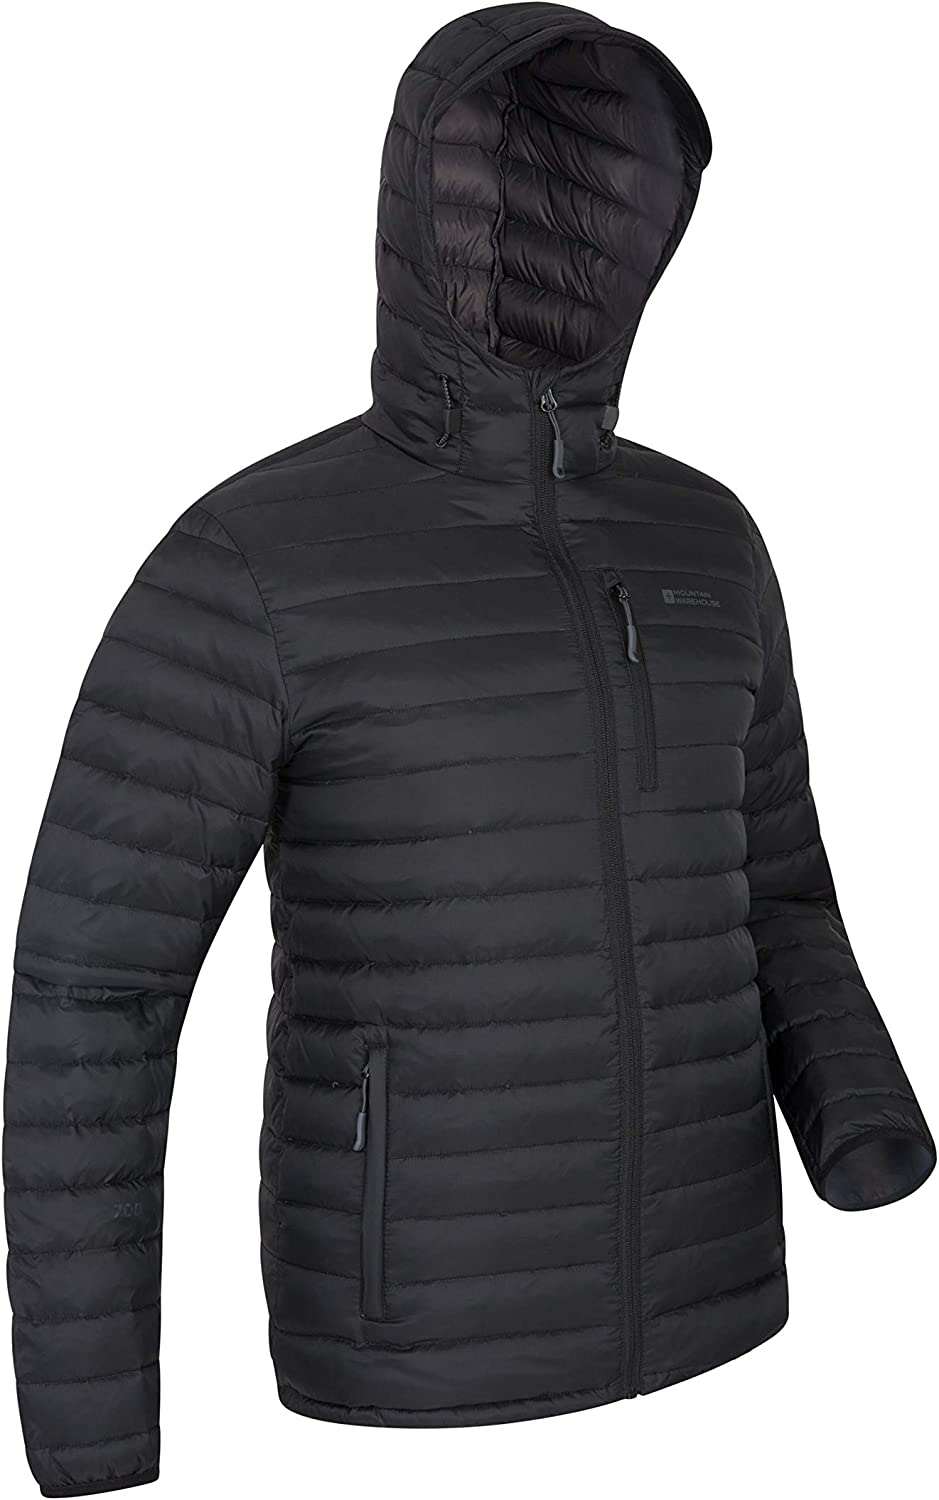 MENS WATERPROOF QUILTED JACKET COAT WINDPROOF HOOD WARM LINING S-3XL REDUCED